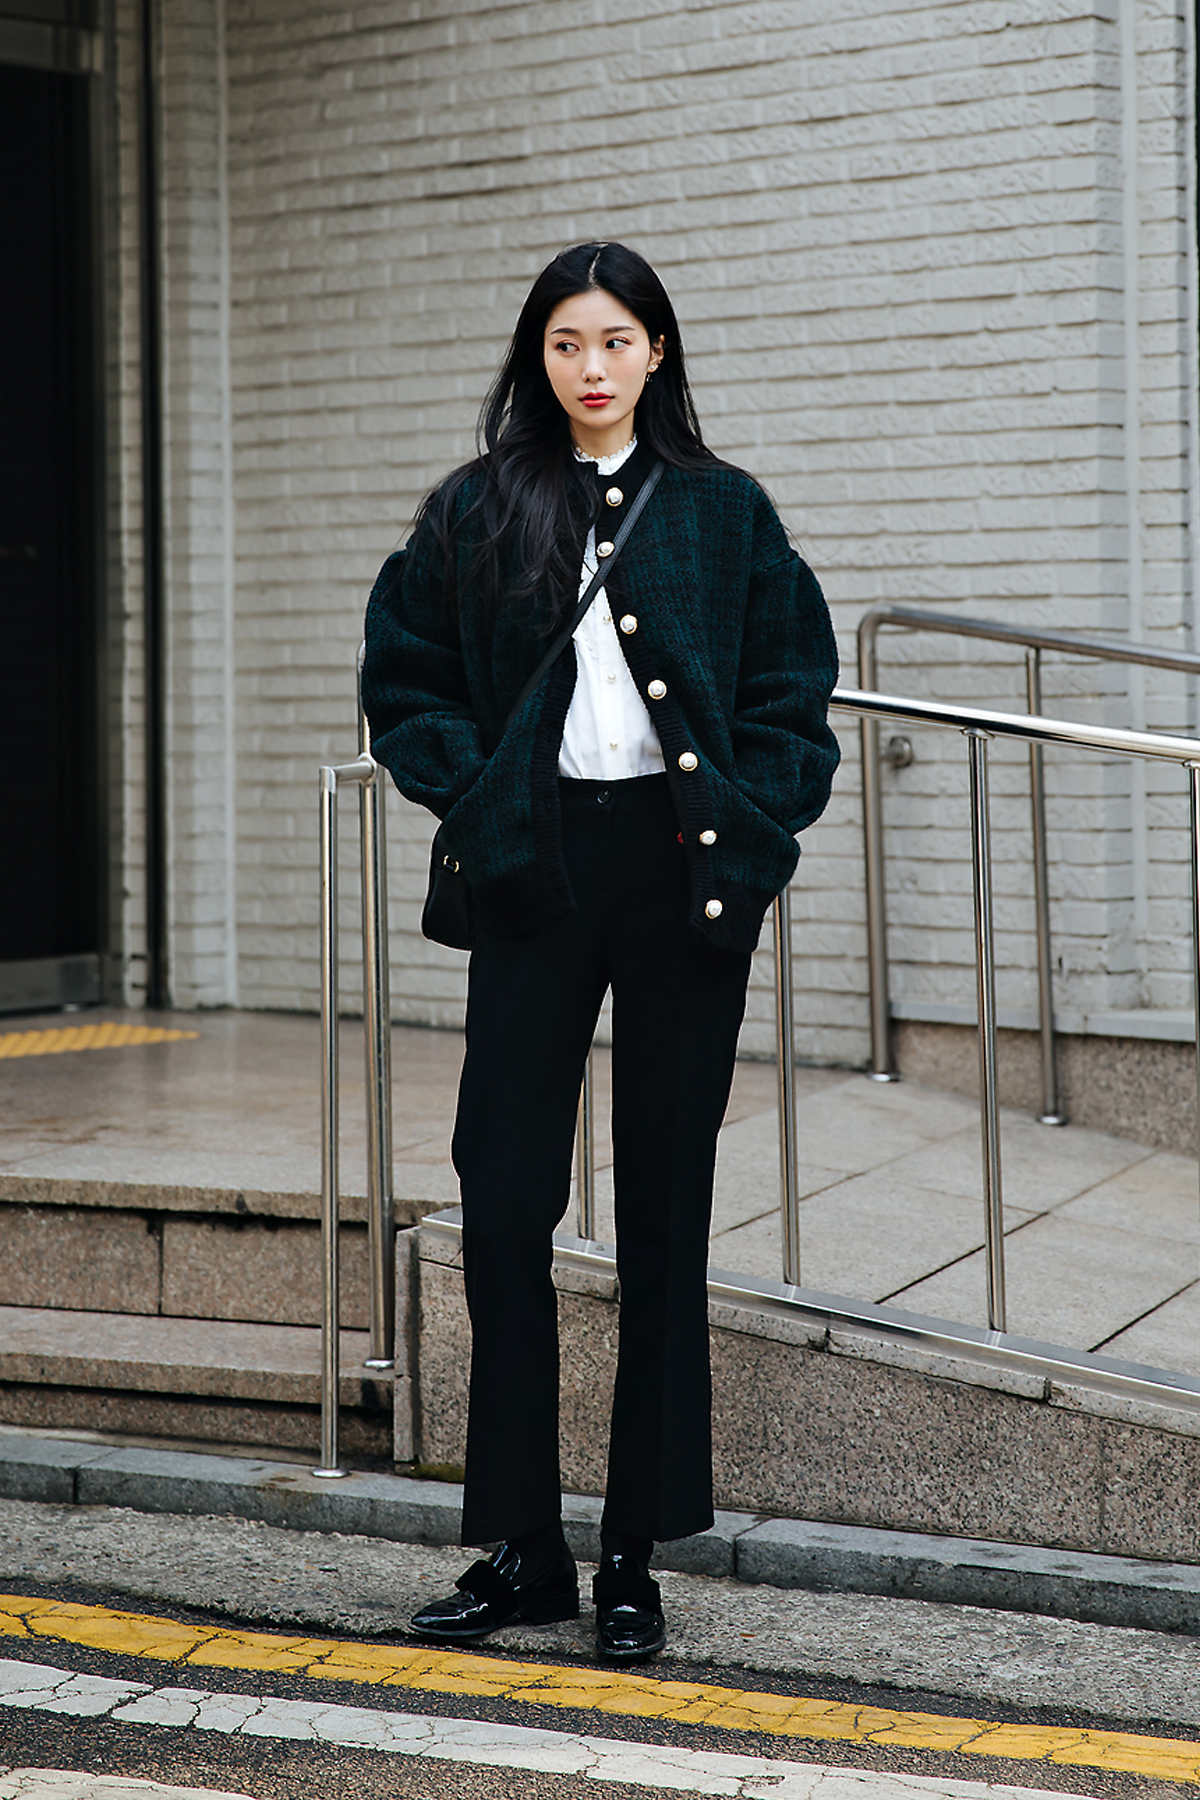 Lee Sanga, Street style women winter 2017-2018 in seoul